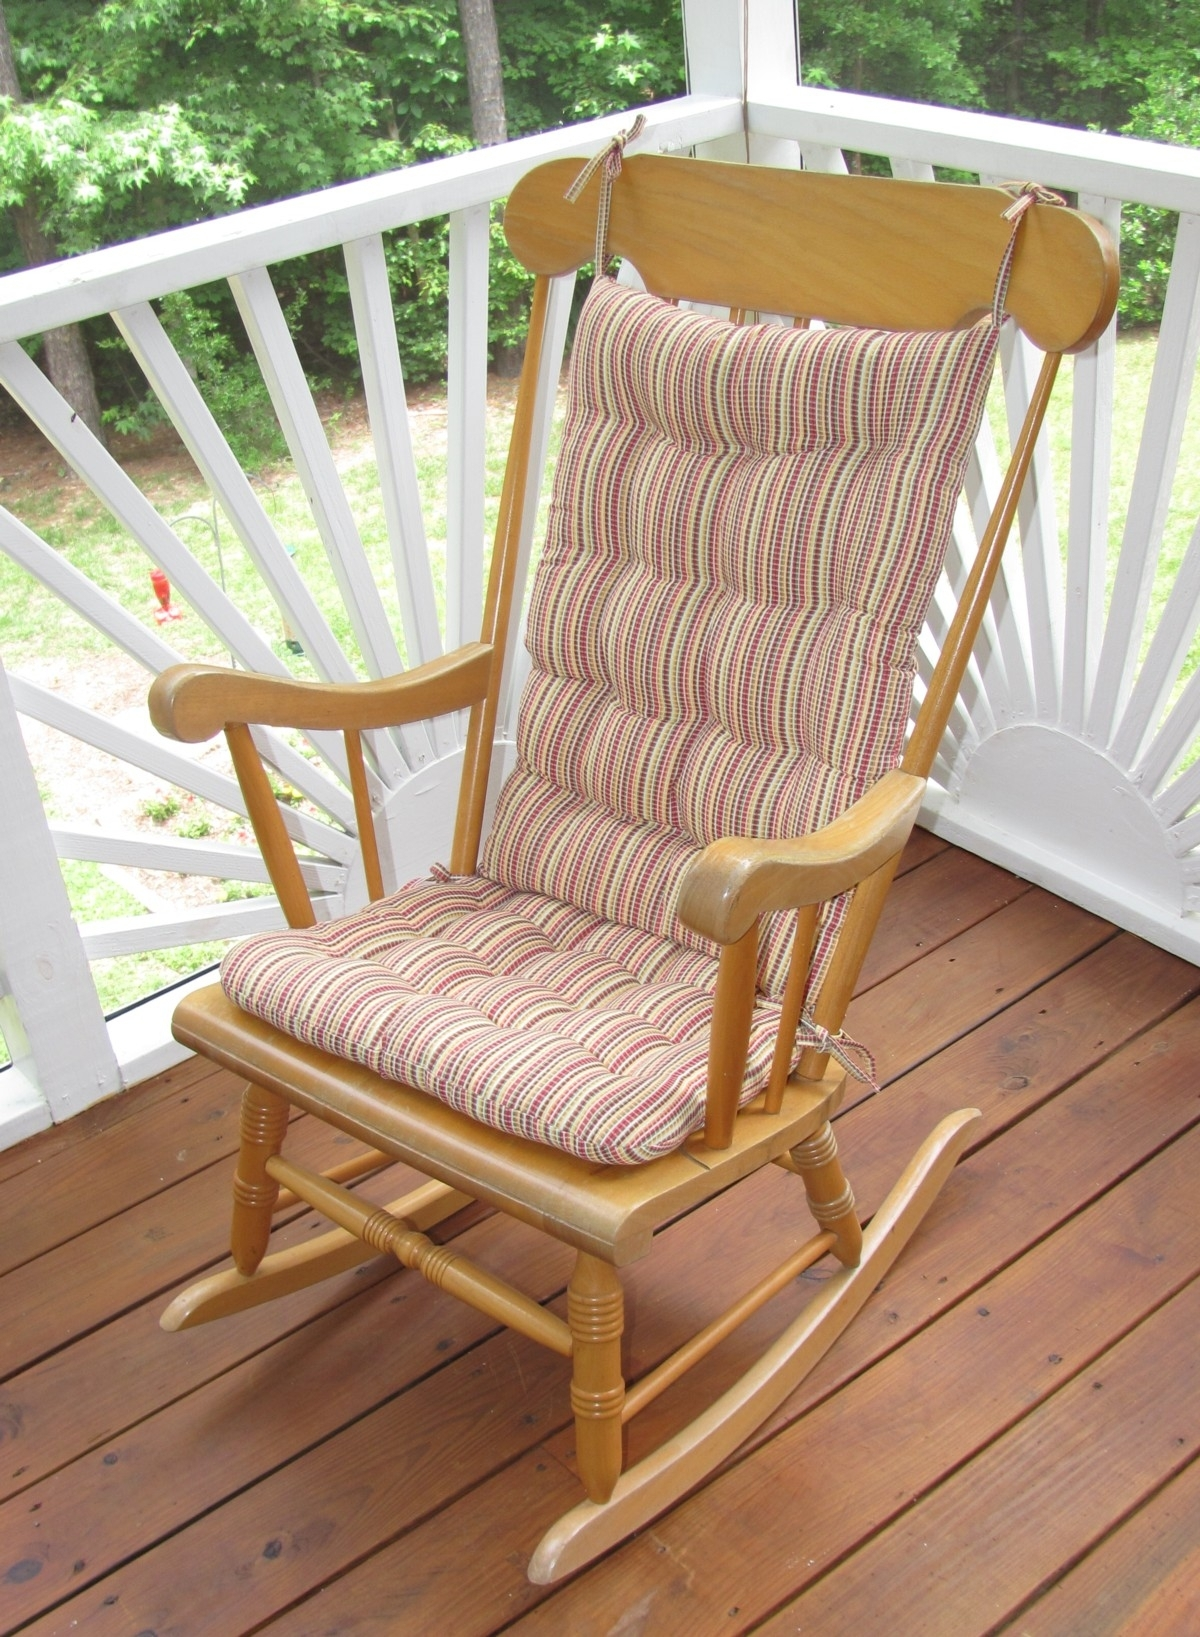 Outdoor Rocking Chair Cushions Strip : Beautiful Outdoor Rocking Intended For Rocking Chair Cushions For Outdoor (#9 of 15)